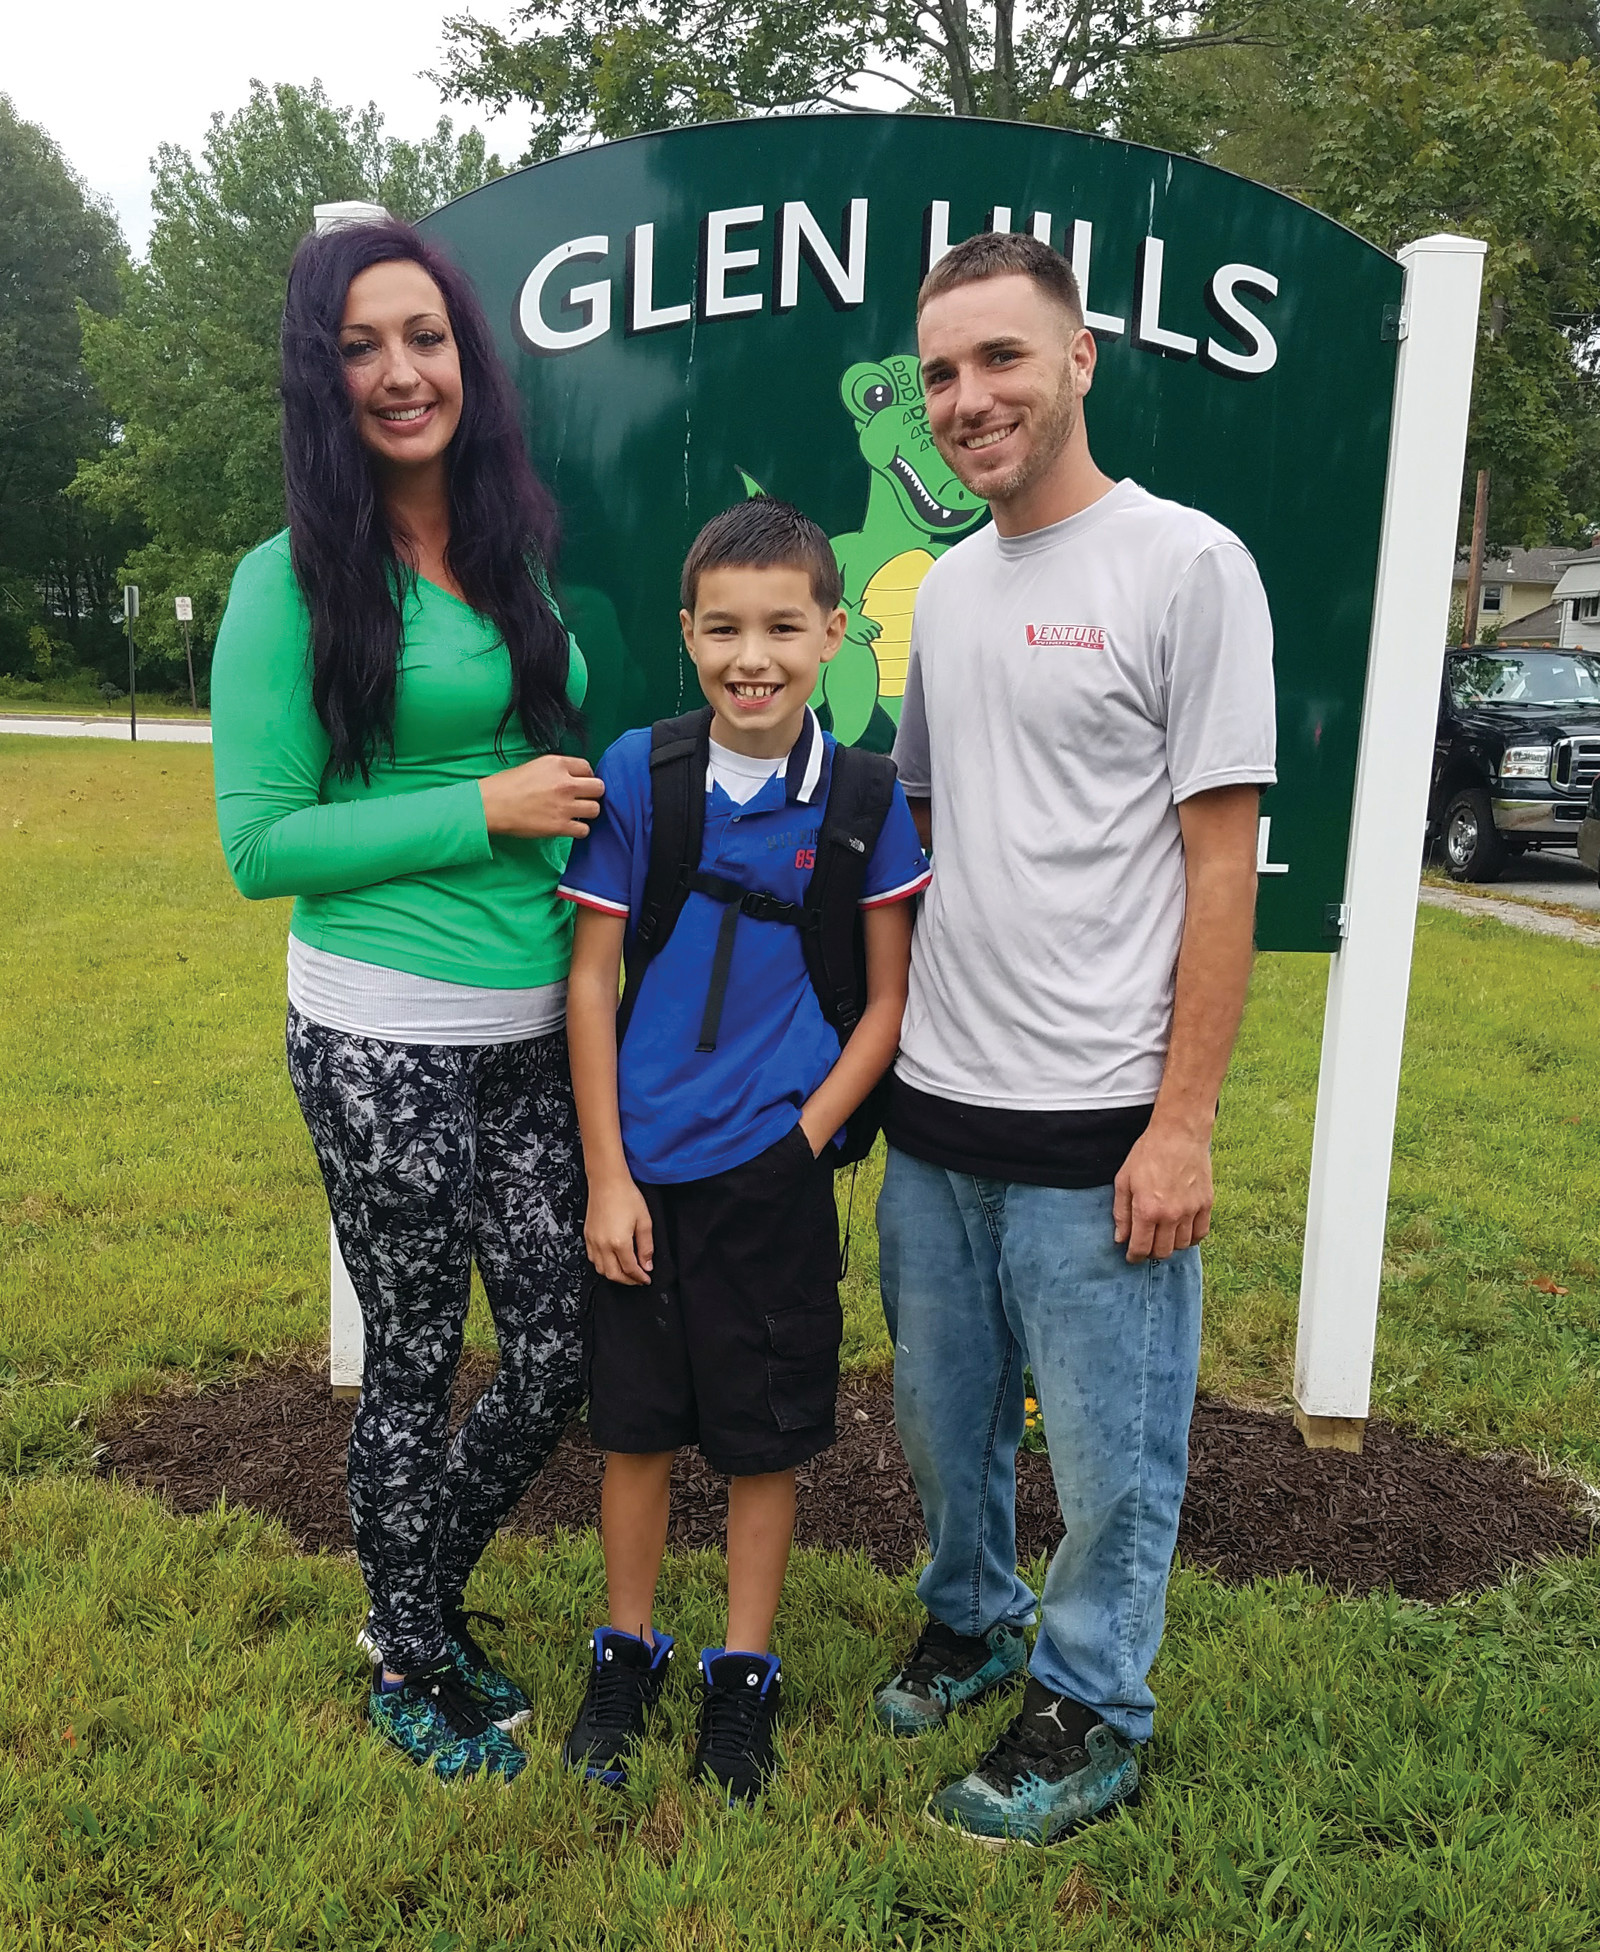 HEADING INTO THE FIFTH GRADE: Christopher Donnelly takes a moment to pose in front of the Glen Hills Gator sign at Glen Hills Elementary School during drop-off time on Tuesday morning. With him are James Donnelly and Heather Barber. (Herald photo by Jen Cowart)